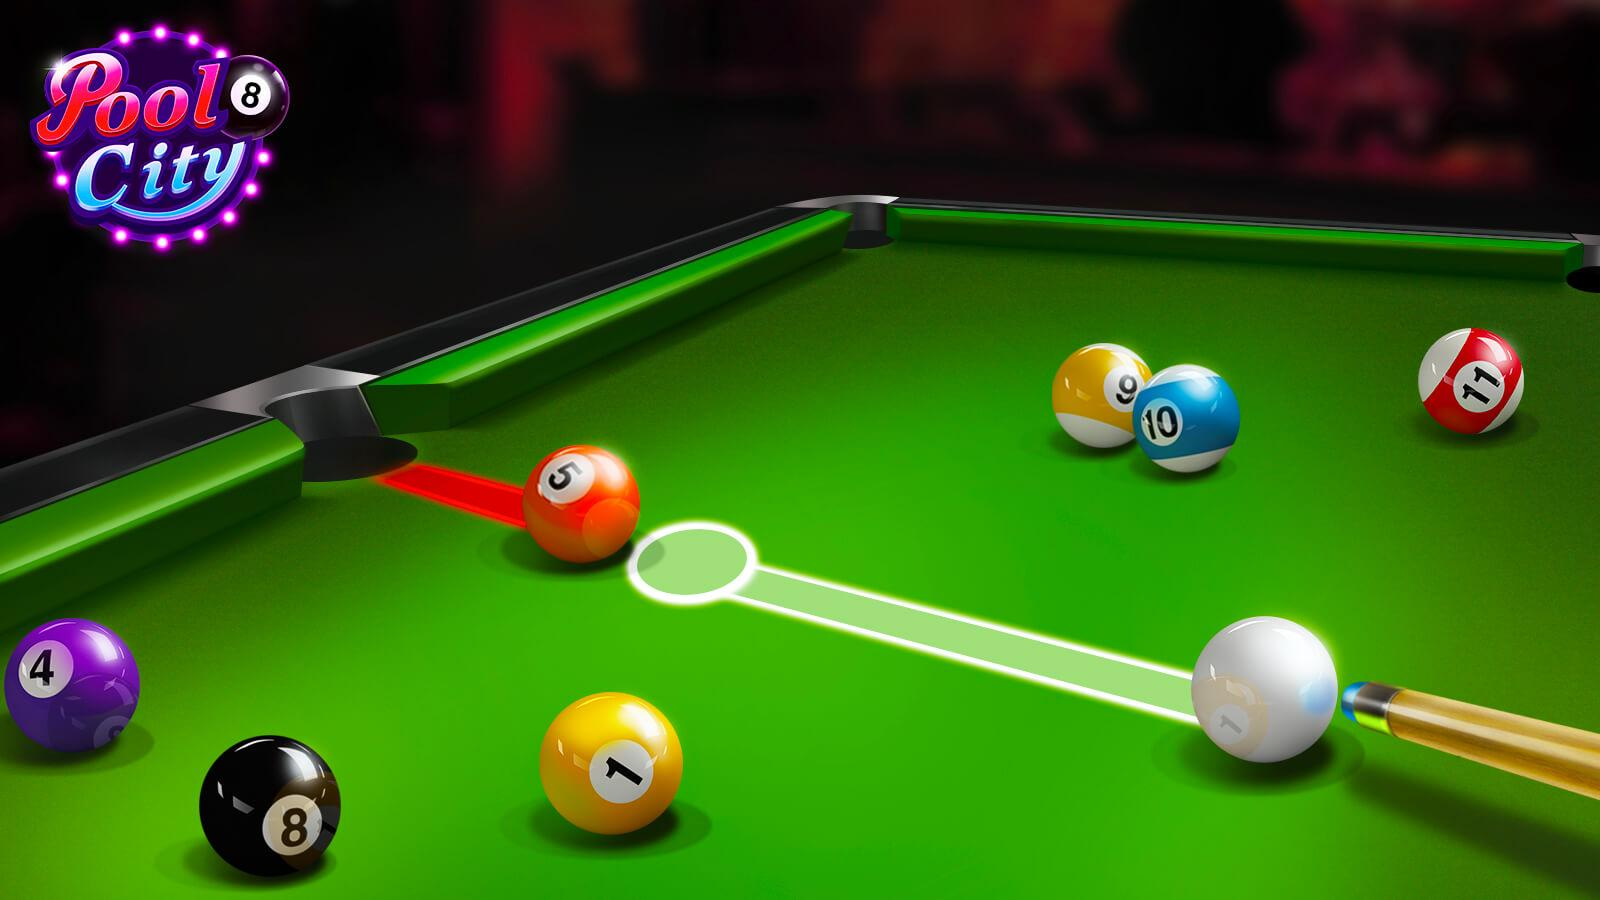 8 Pool Rexdl Billiards City Apk Mod Unlimited Android Apk Mods